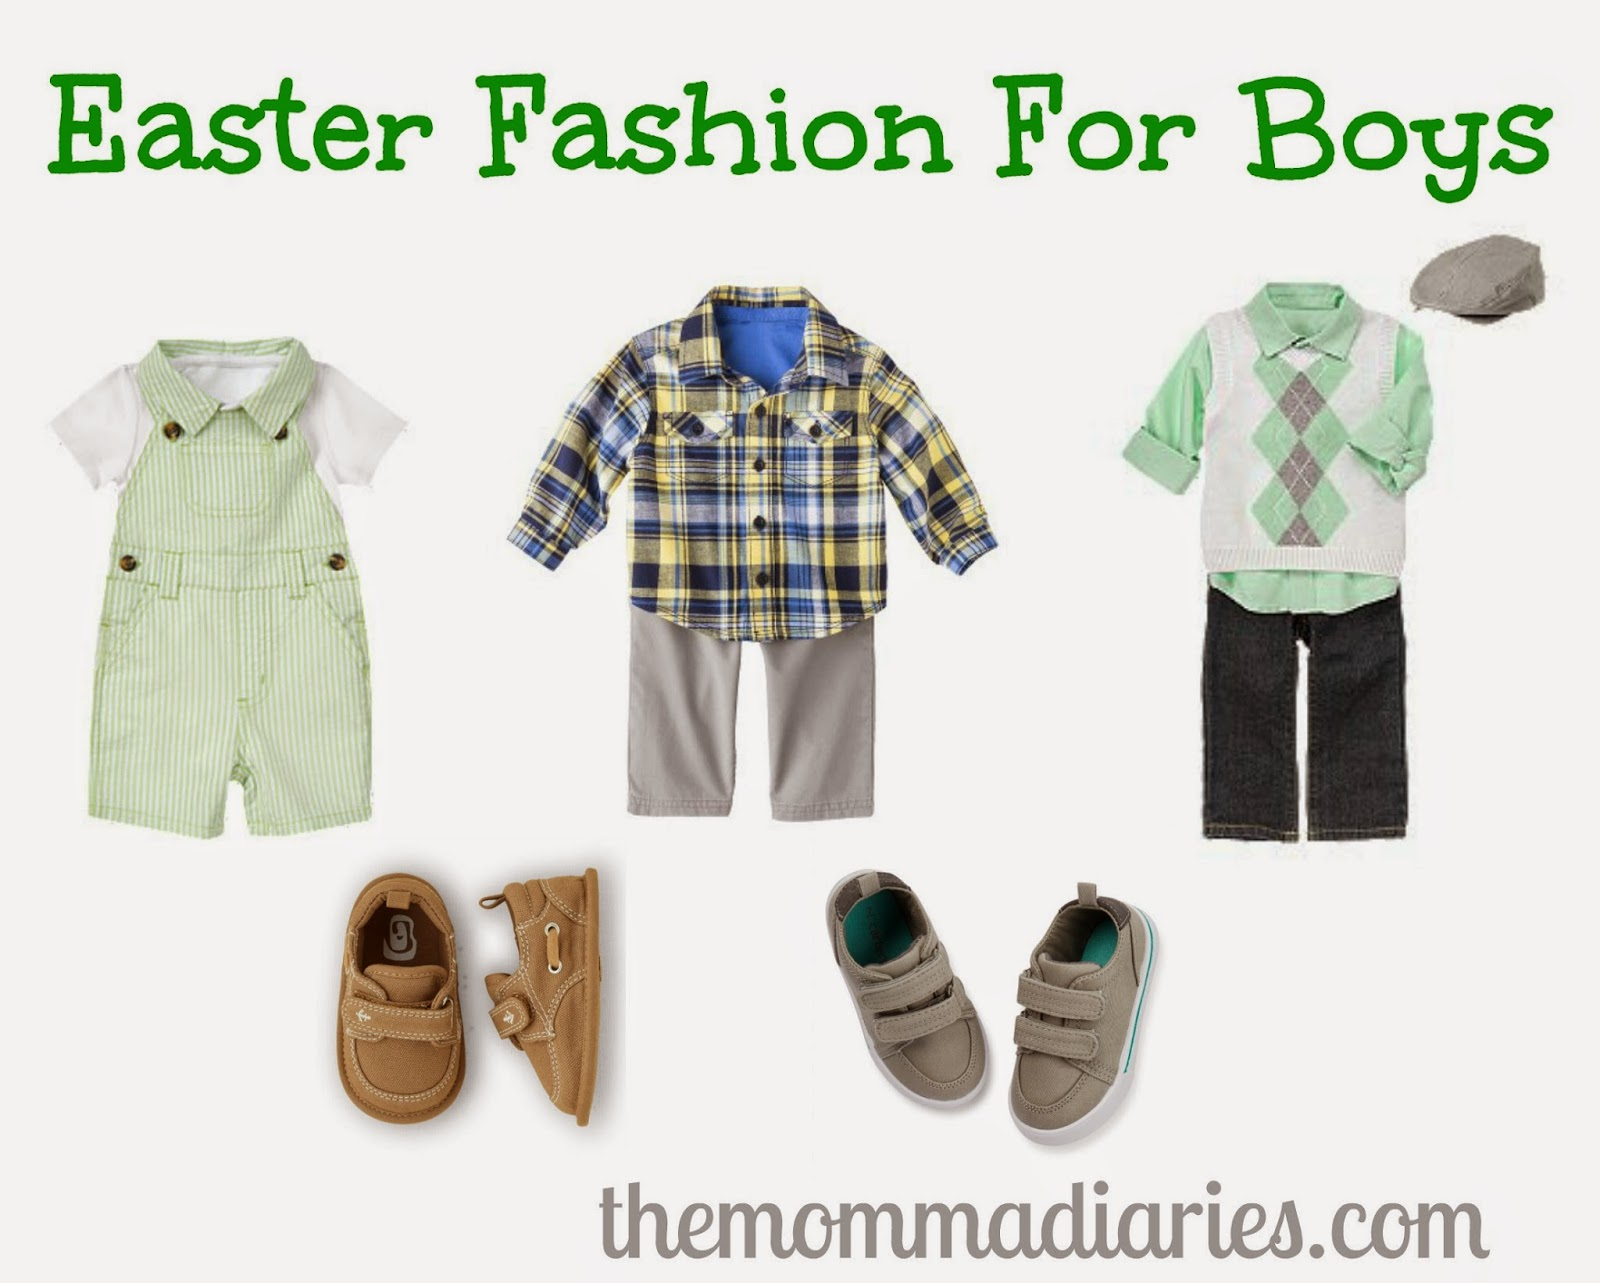 #Easter #Fashion For #Boys